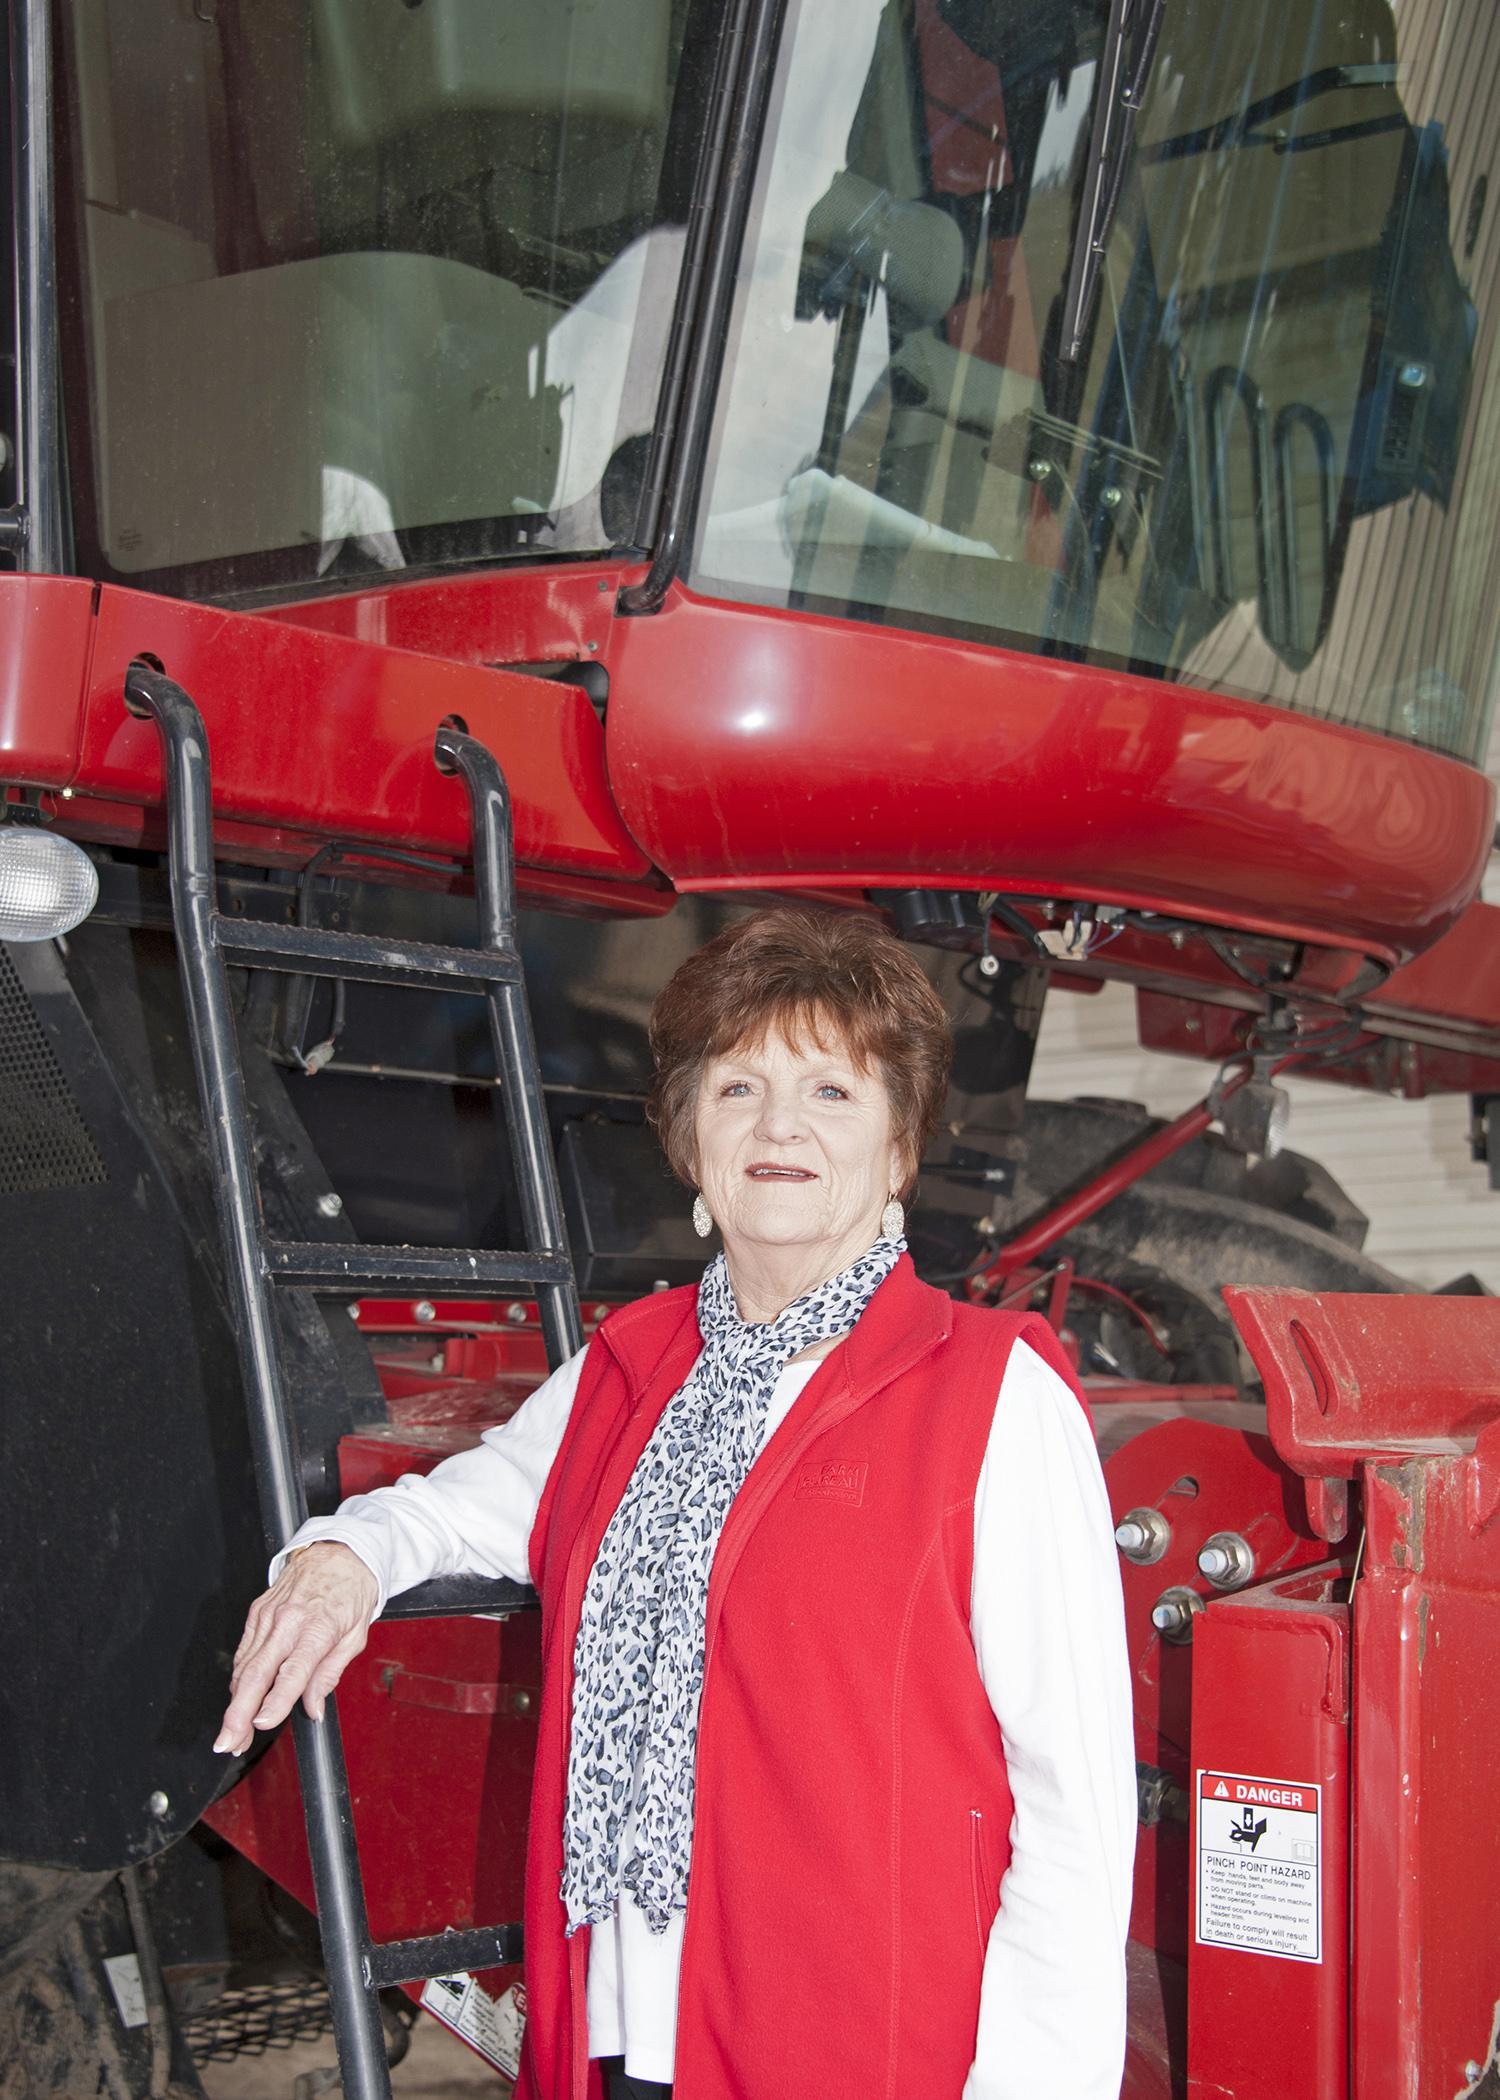 Wanda Hill, a Humphreys County farmer, helps promote agriculture throughout Mississippi because she feels farming is rewarding. (Photo by MSU Ag Communications/Kat Lawrence)